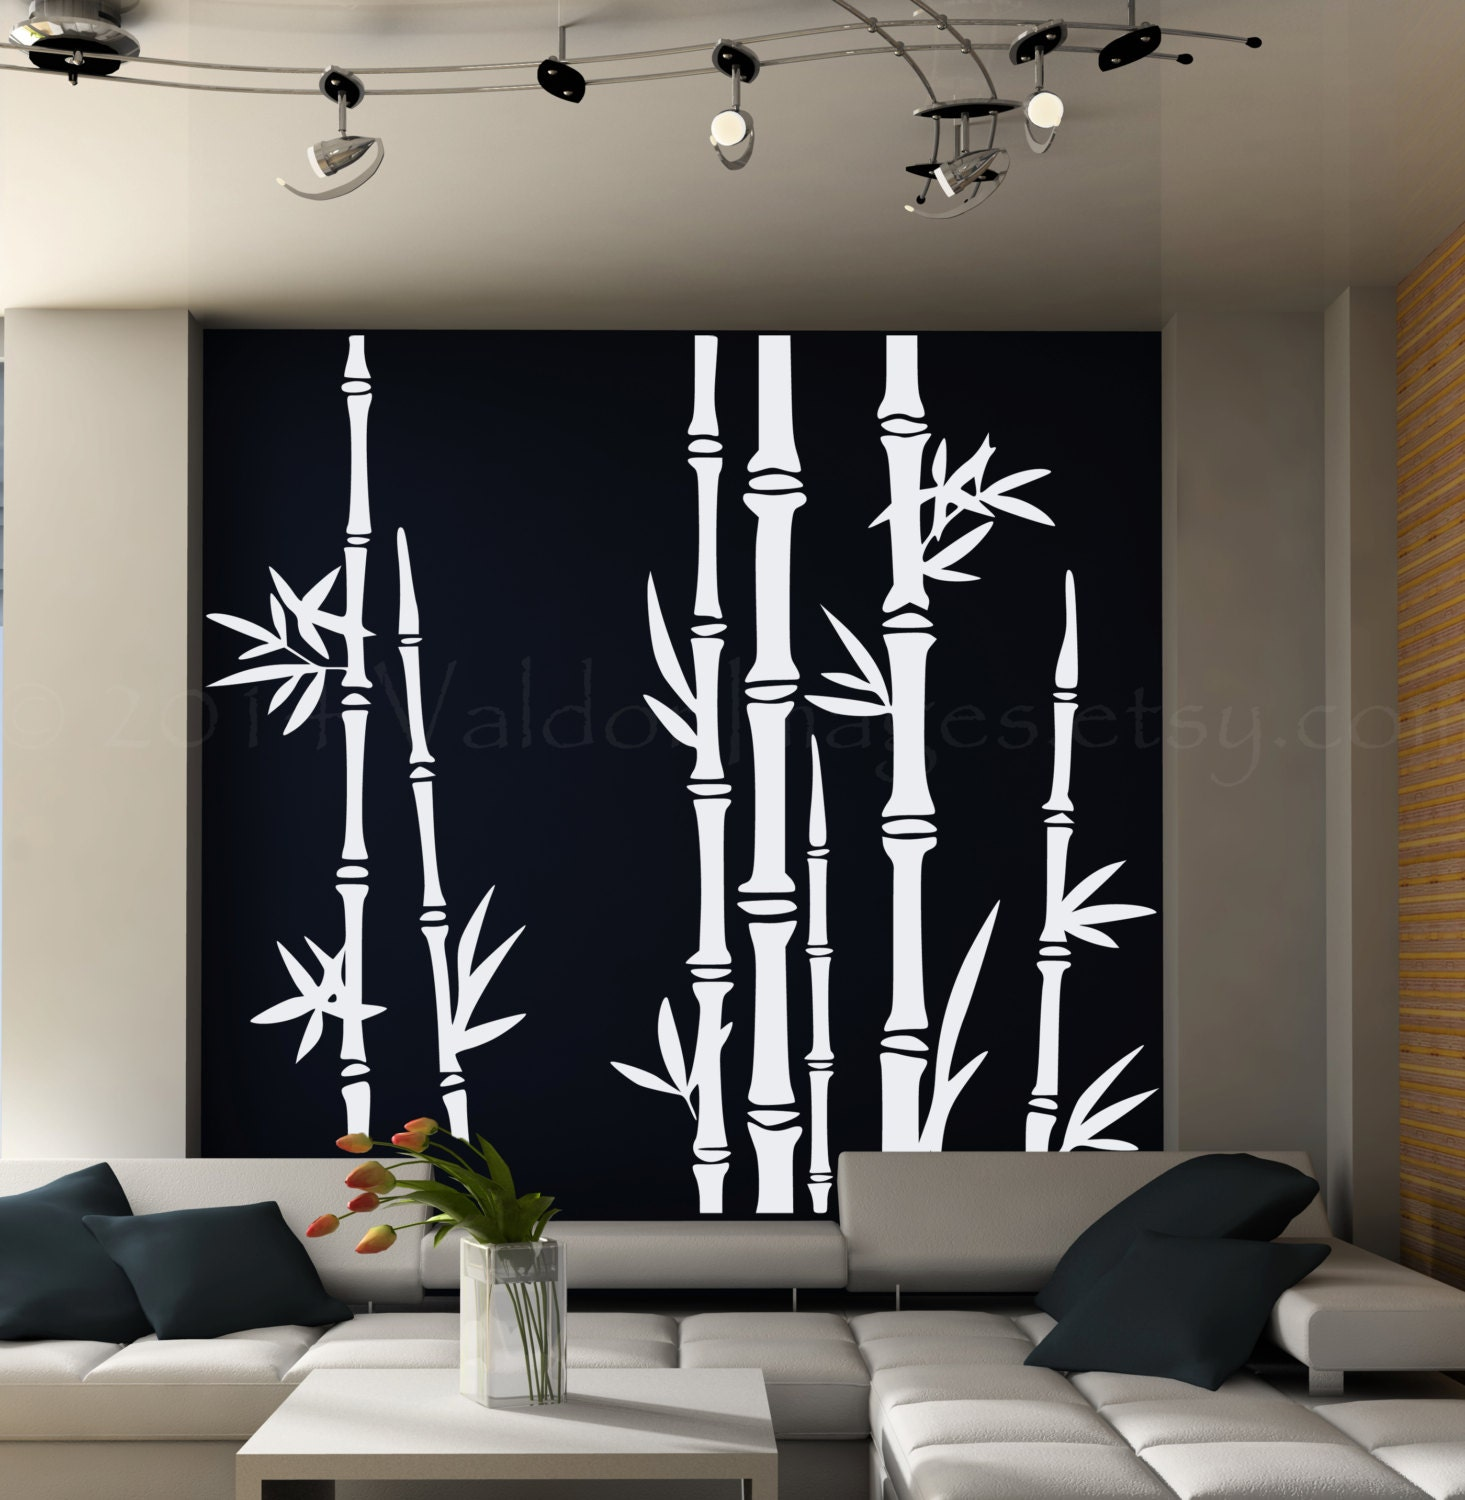 Bamboo Tree Wall Decal Living Room Wall Decal Tree Wall - Vinyl wall decals asian